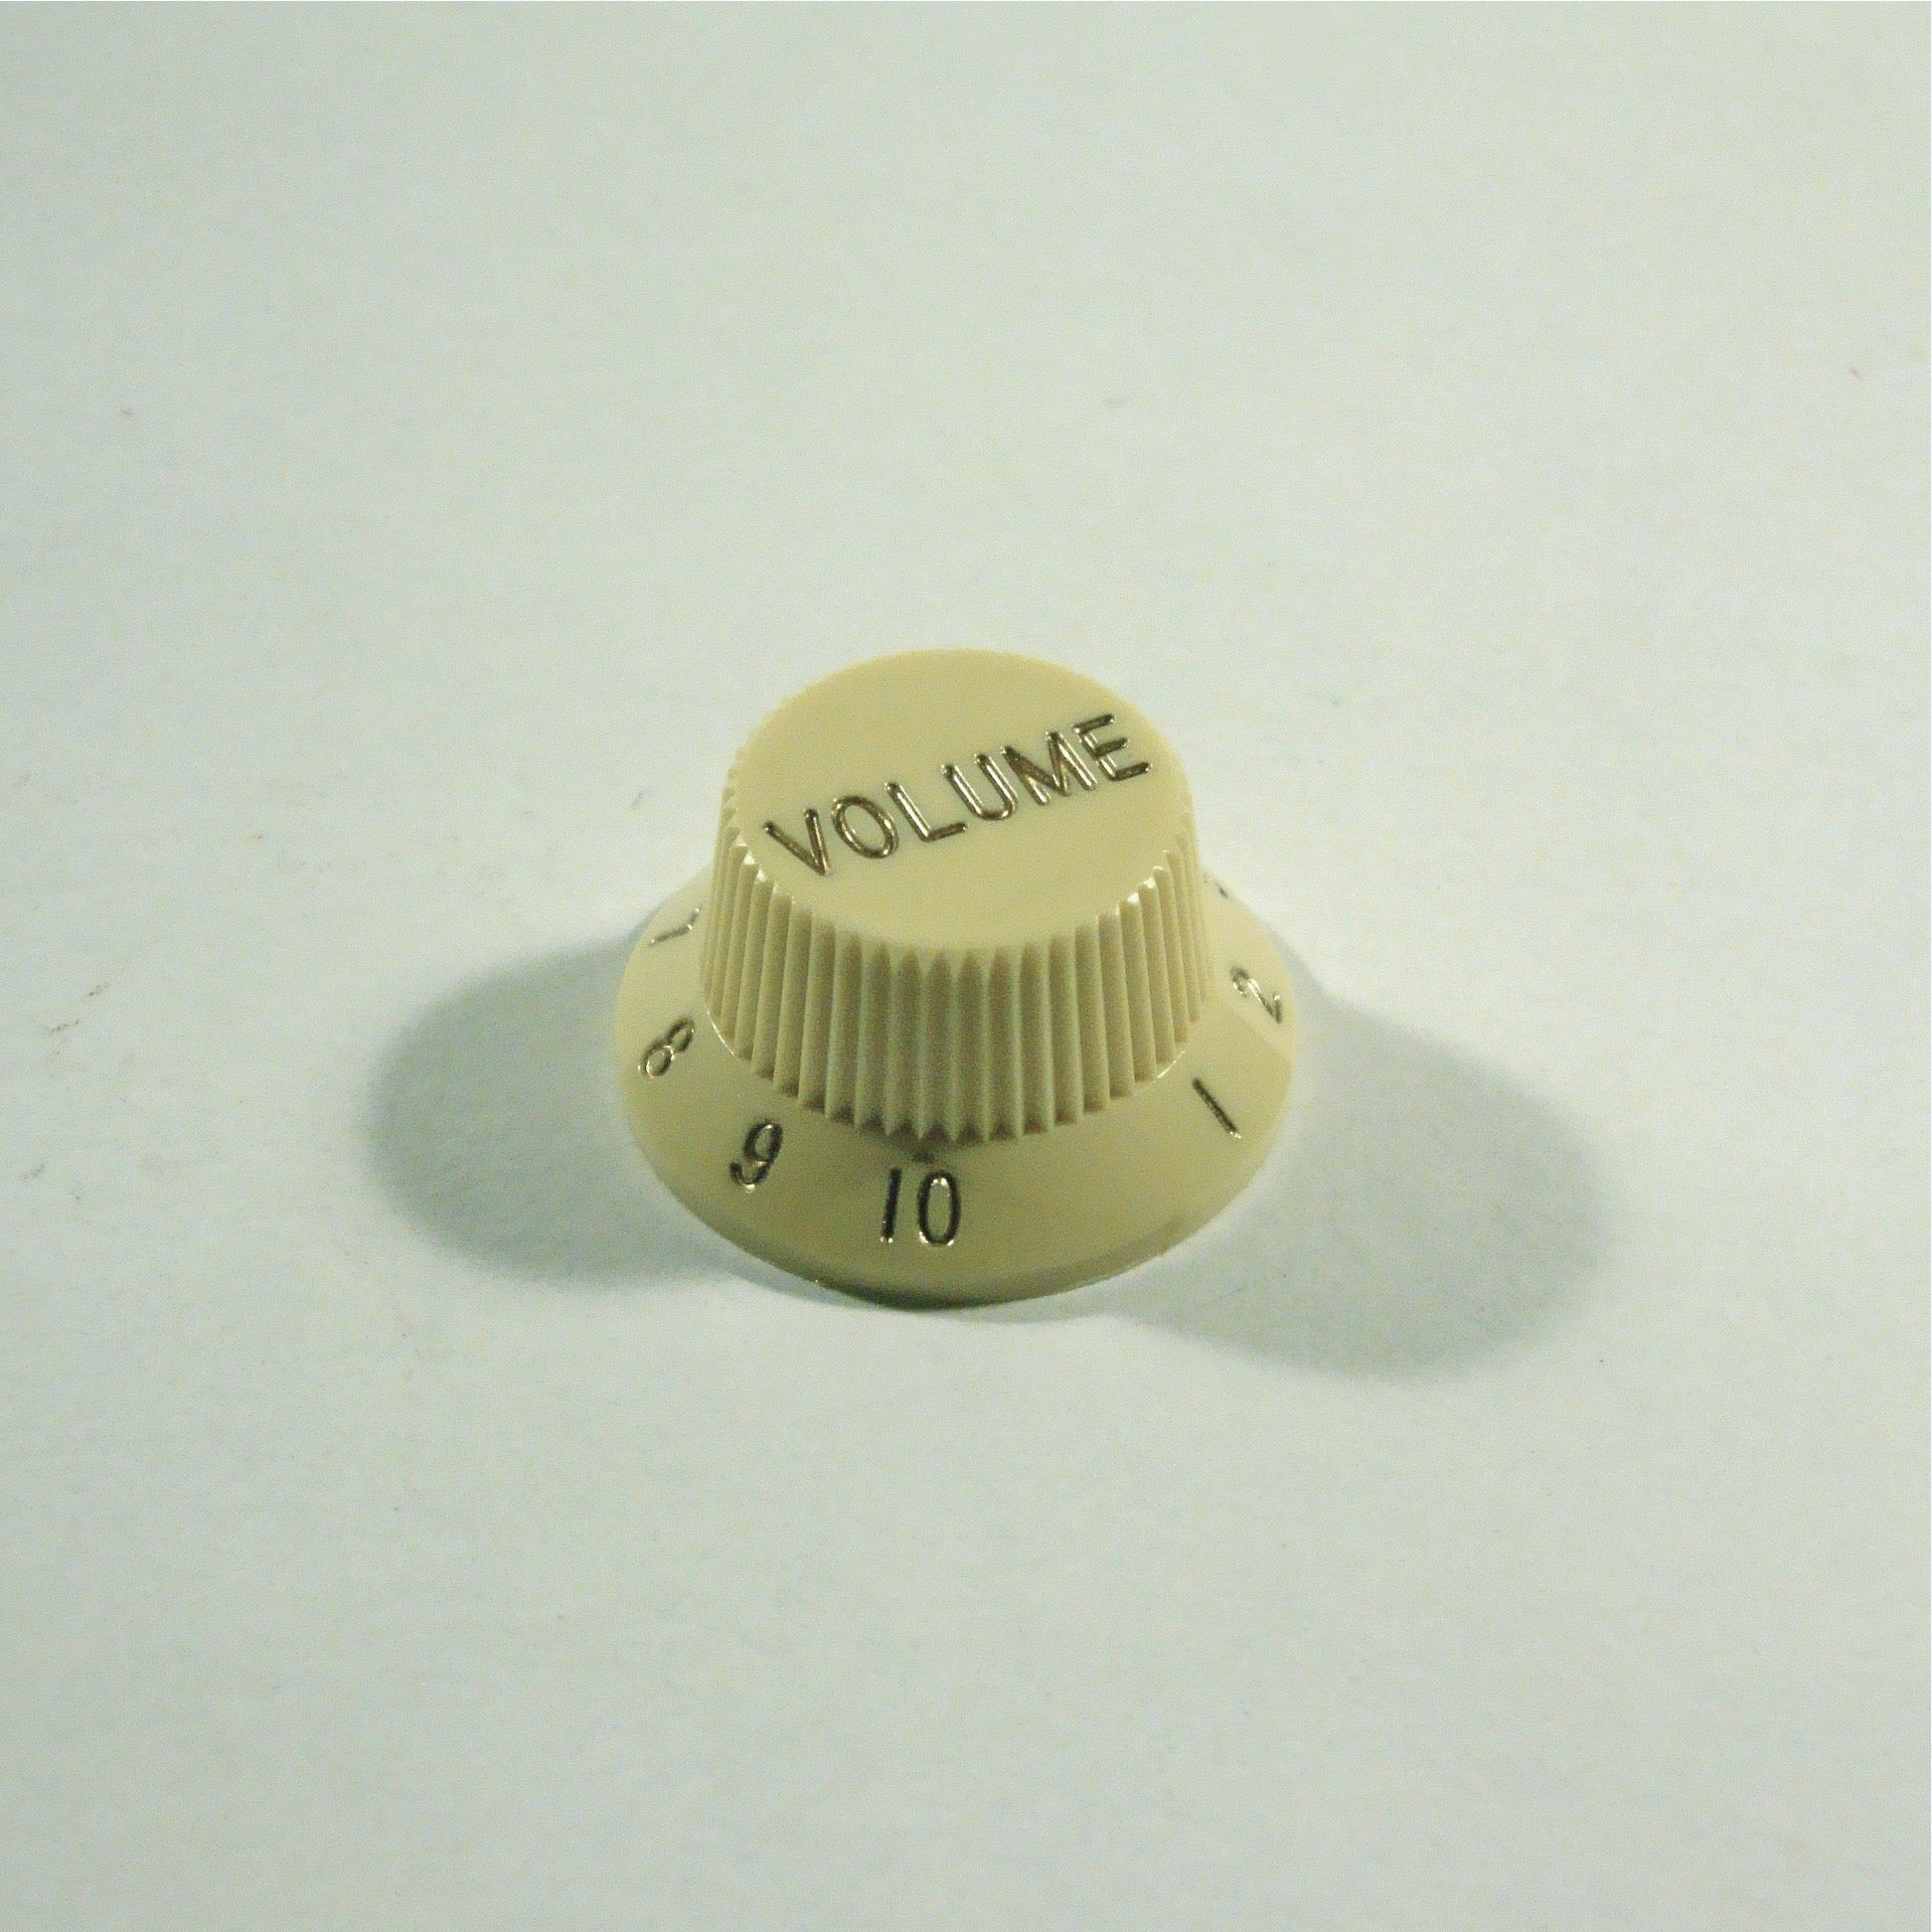 Volume knob, Strat-style, Ivory, fits both fine and coarse knurled pots